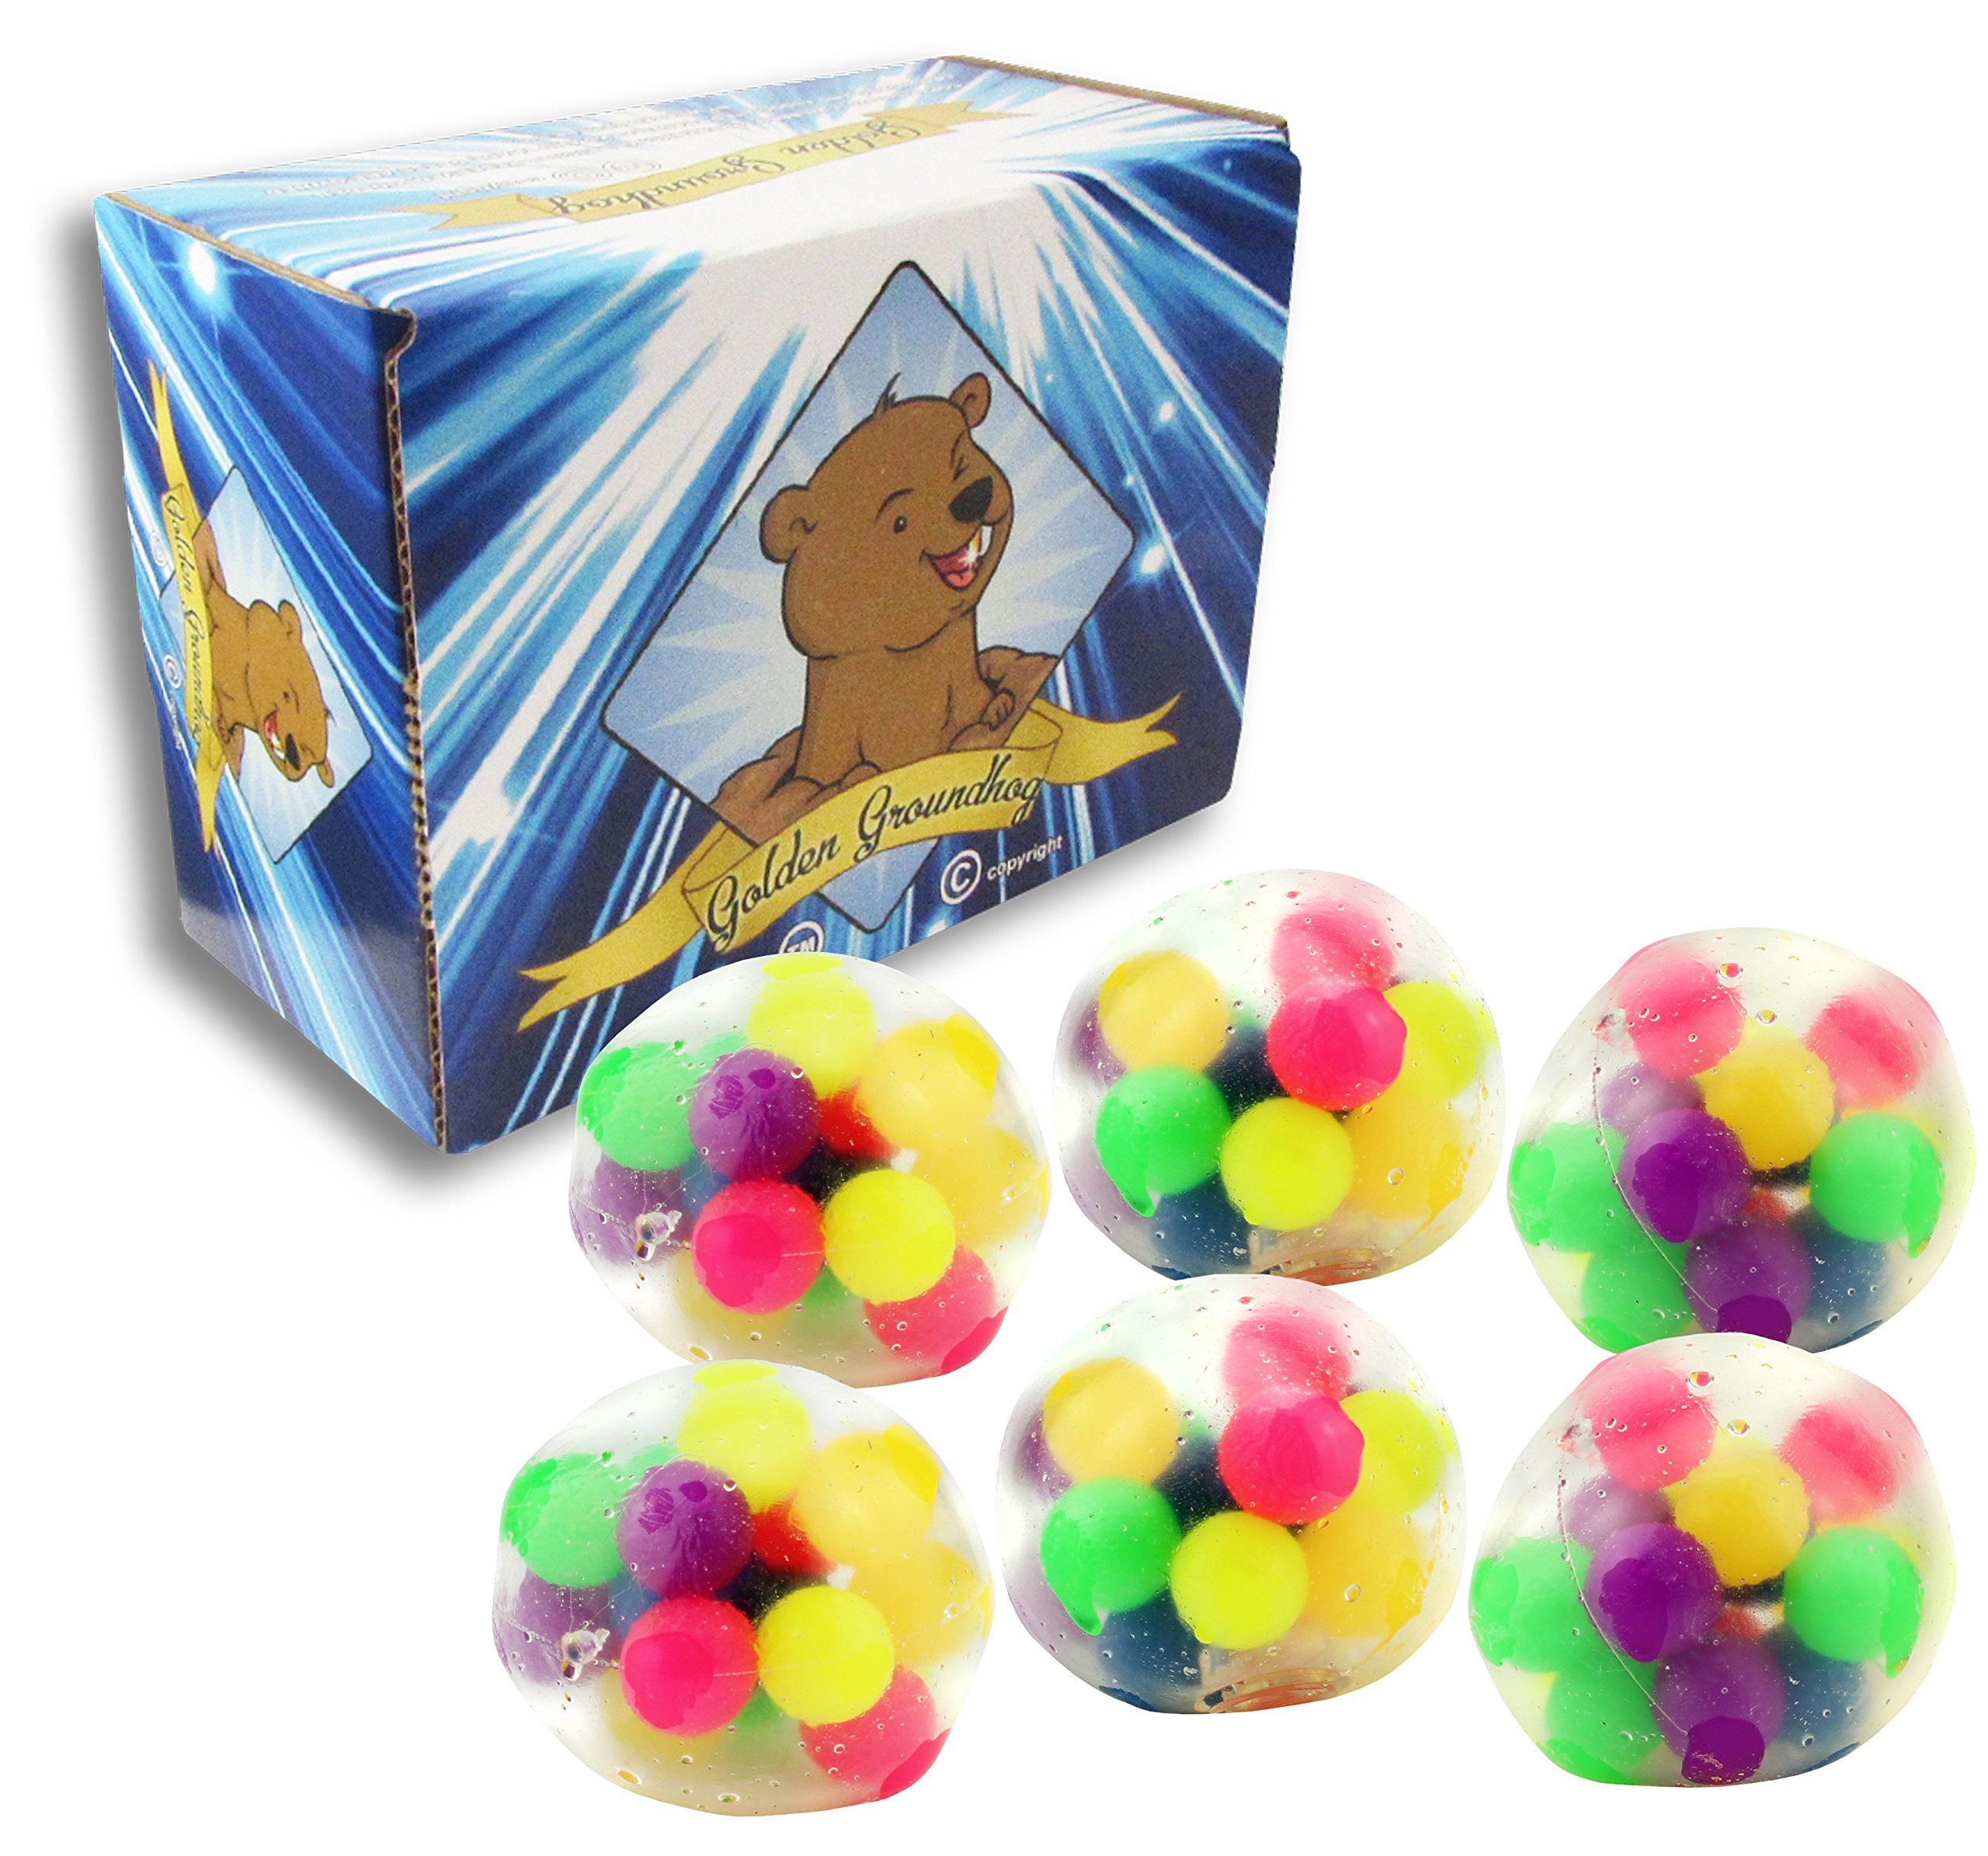 DNA Stress Ball - 6 Pack - Stress Balls for Kids - Anxiety Sensory Toys for Autistic Children Stress Relief Fidgets for Classroom, Travel & More! Squeeze Balls! Includes Golden Groundhog Storage Box!